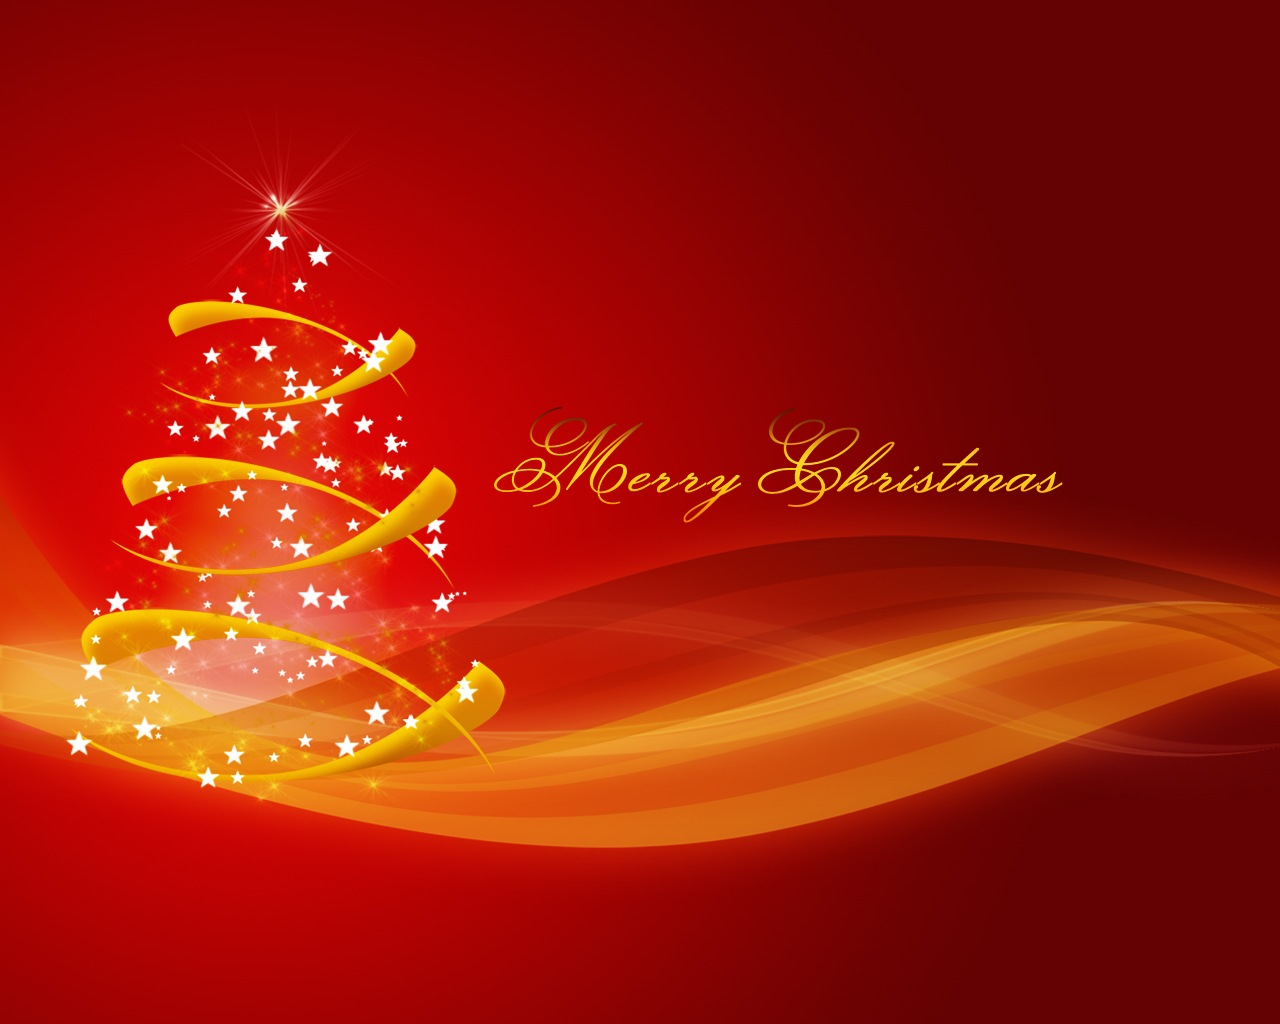 Merry Christmas 2010 Wallpaper Happy Christmas 2010 Wallpapers Prosperous Christmas 2010 Wallpaper Image Picture Photo Poster Print High Resolution 800 600